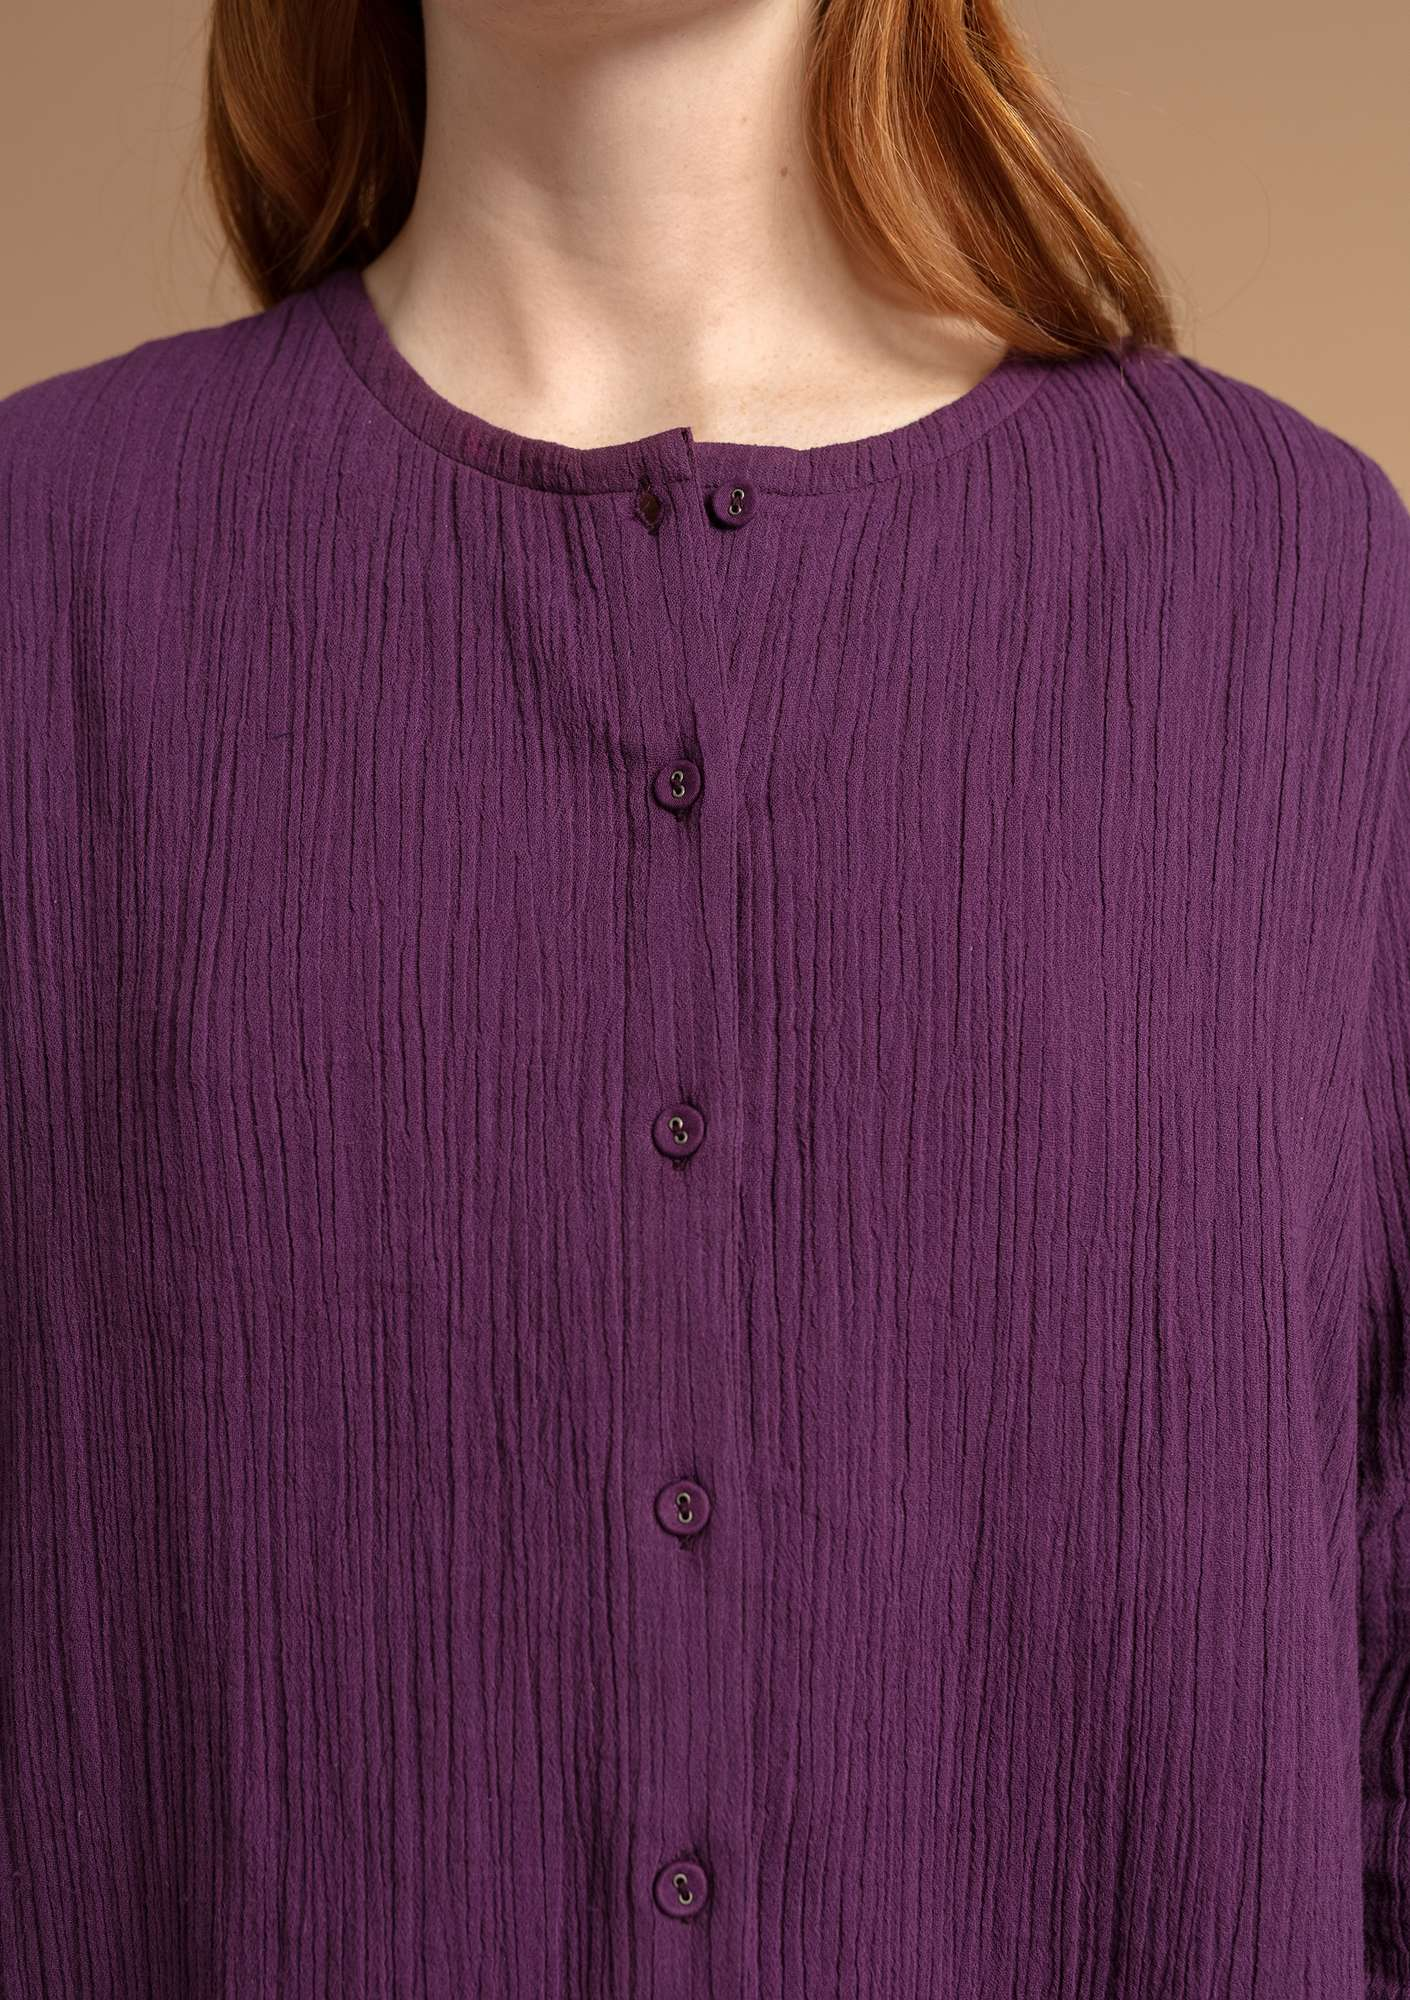 Blouse in organic cotton allium